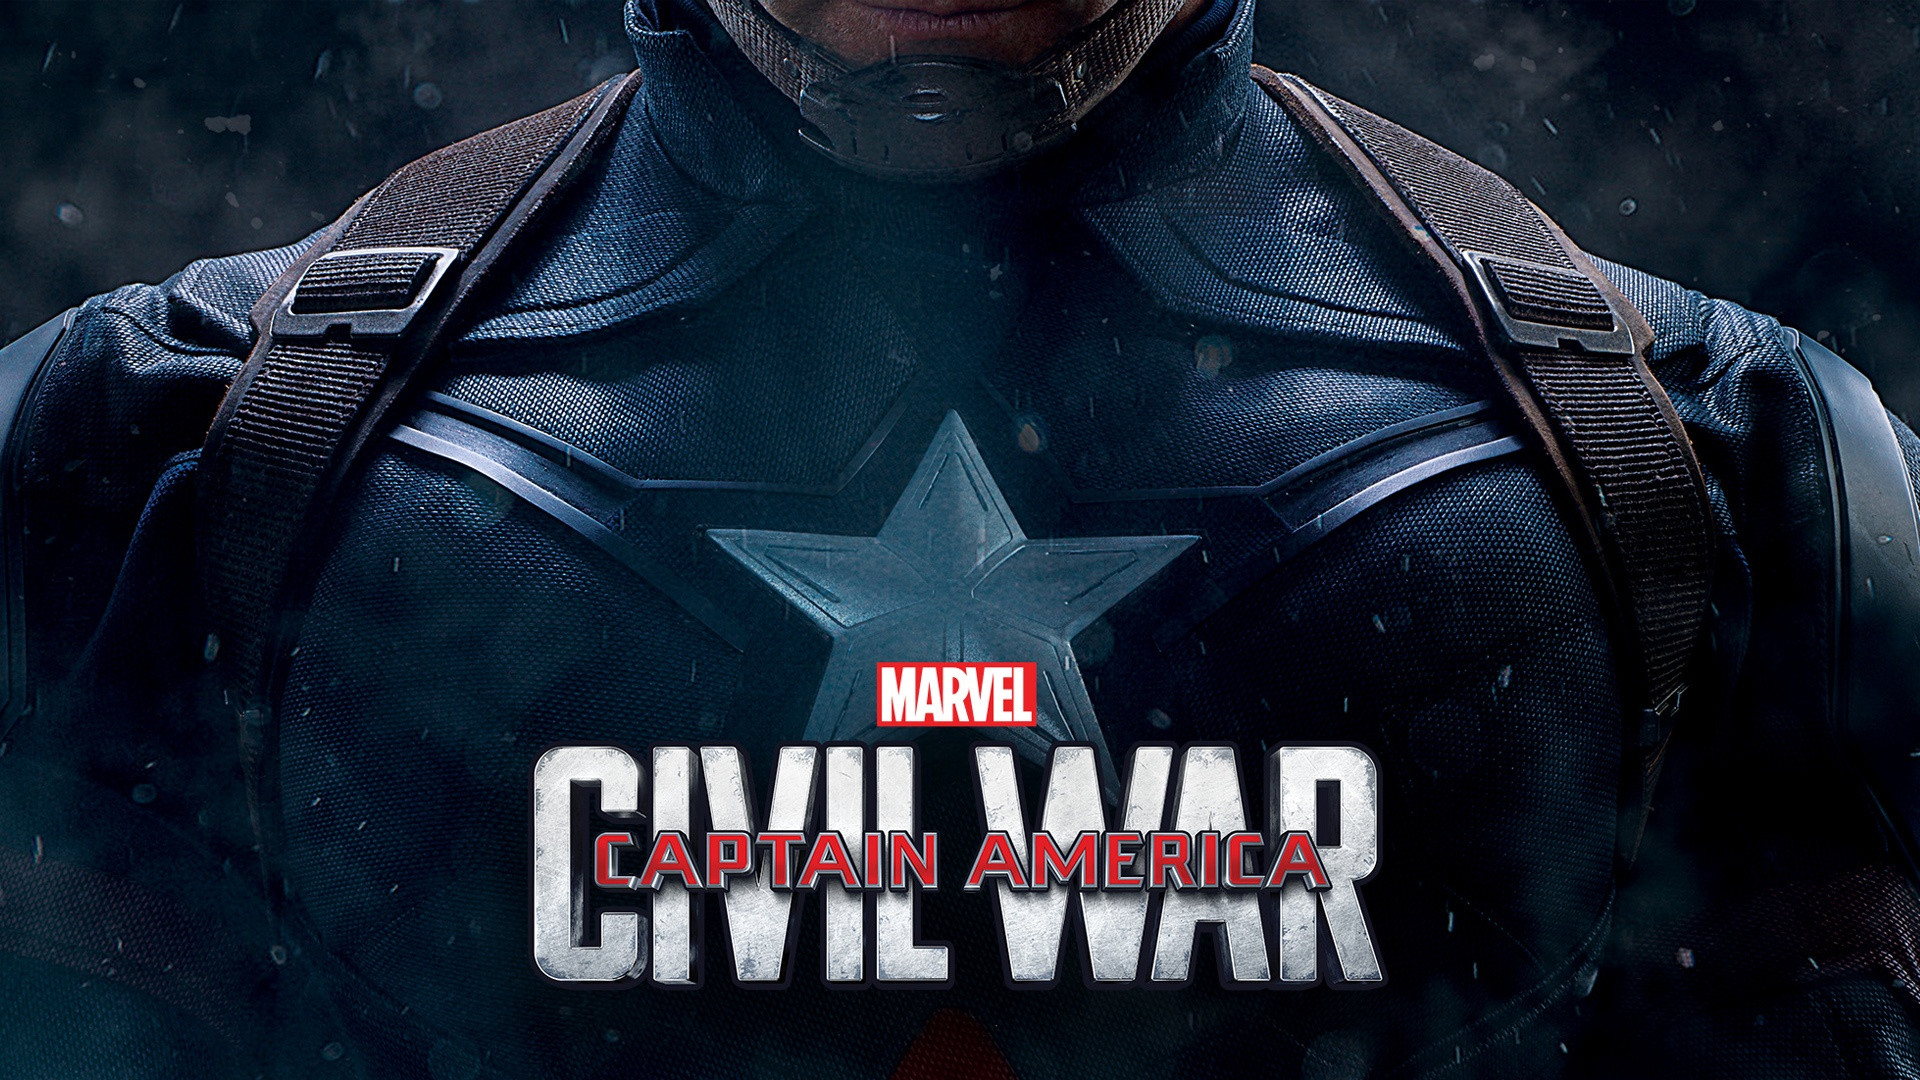 1920x1080 captain america civil war movie poster laptop full hd published on april 5 2016 original resolution 1920x1080 voltagebd Image collections